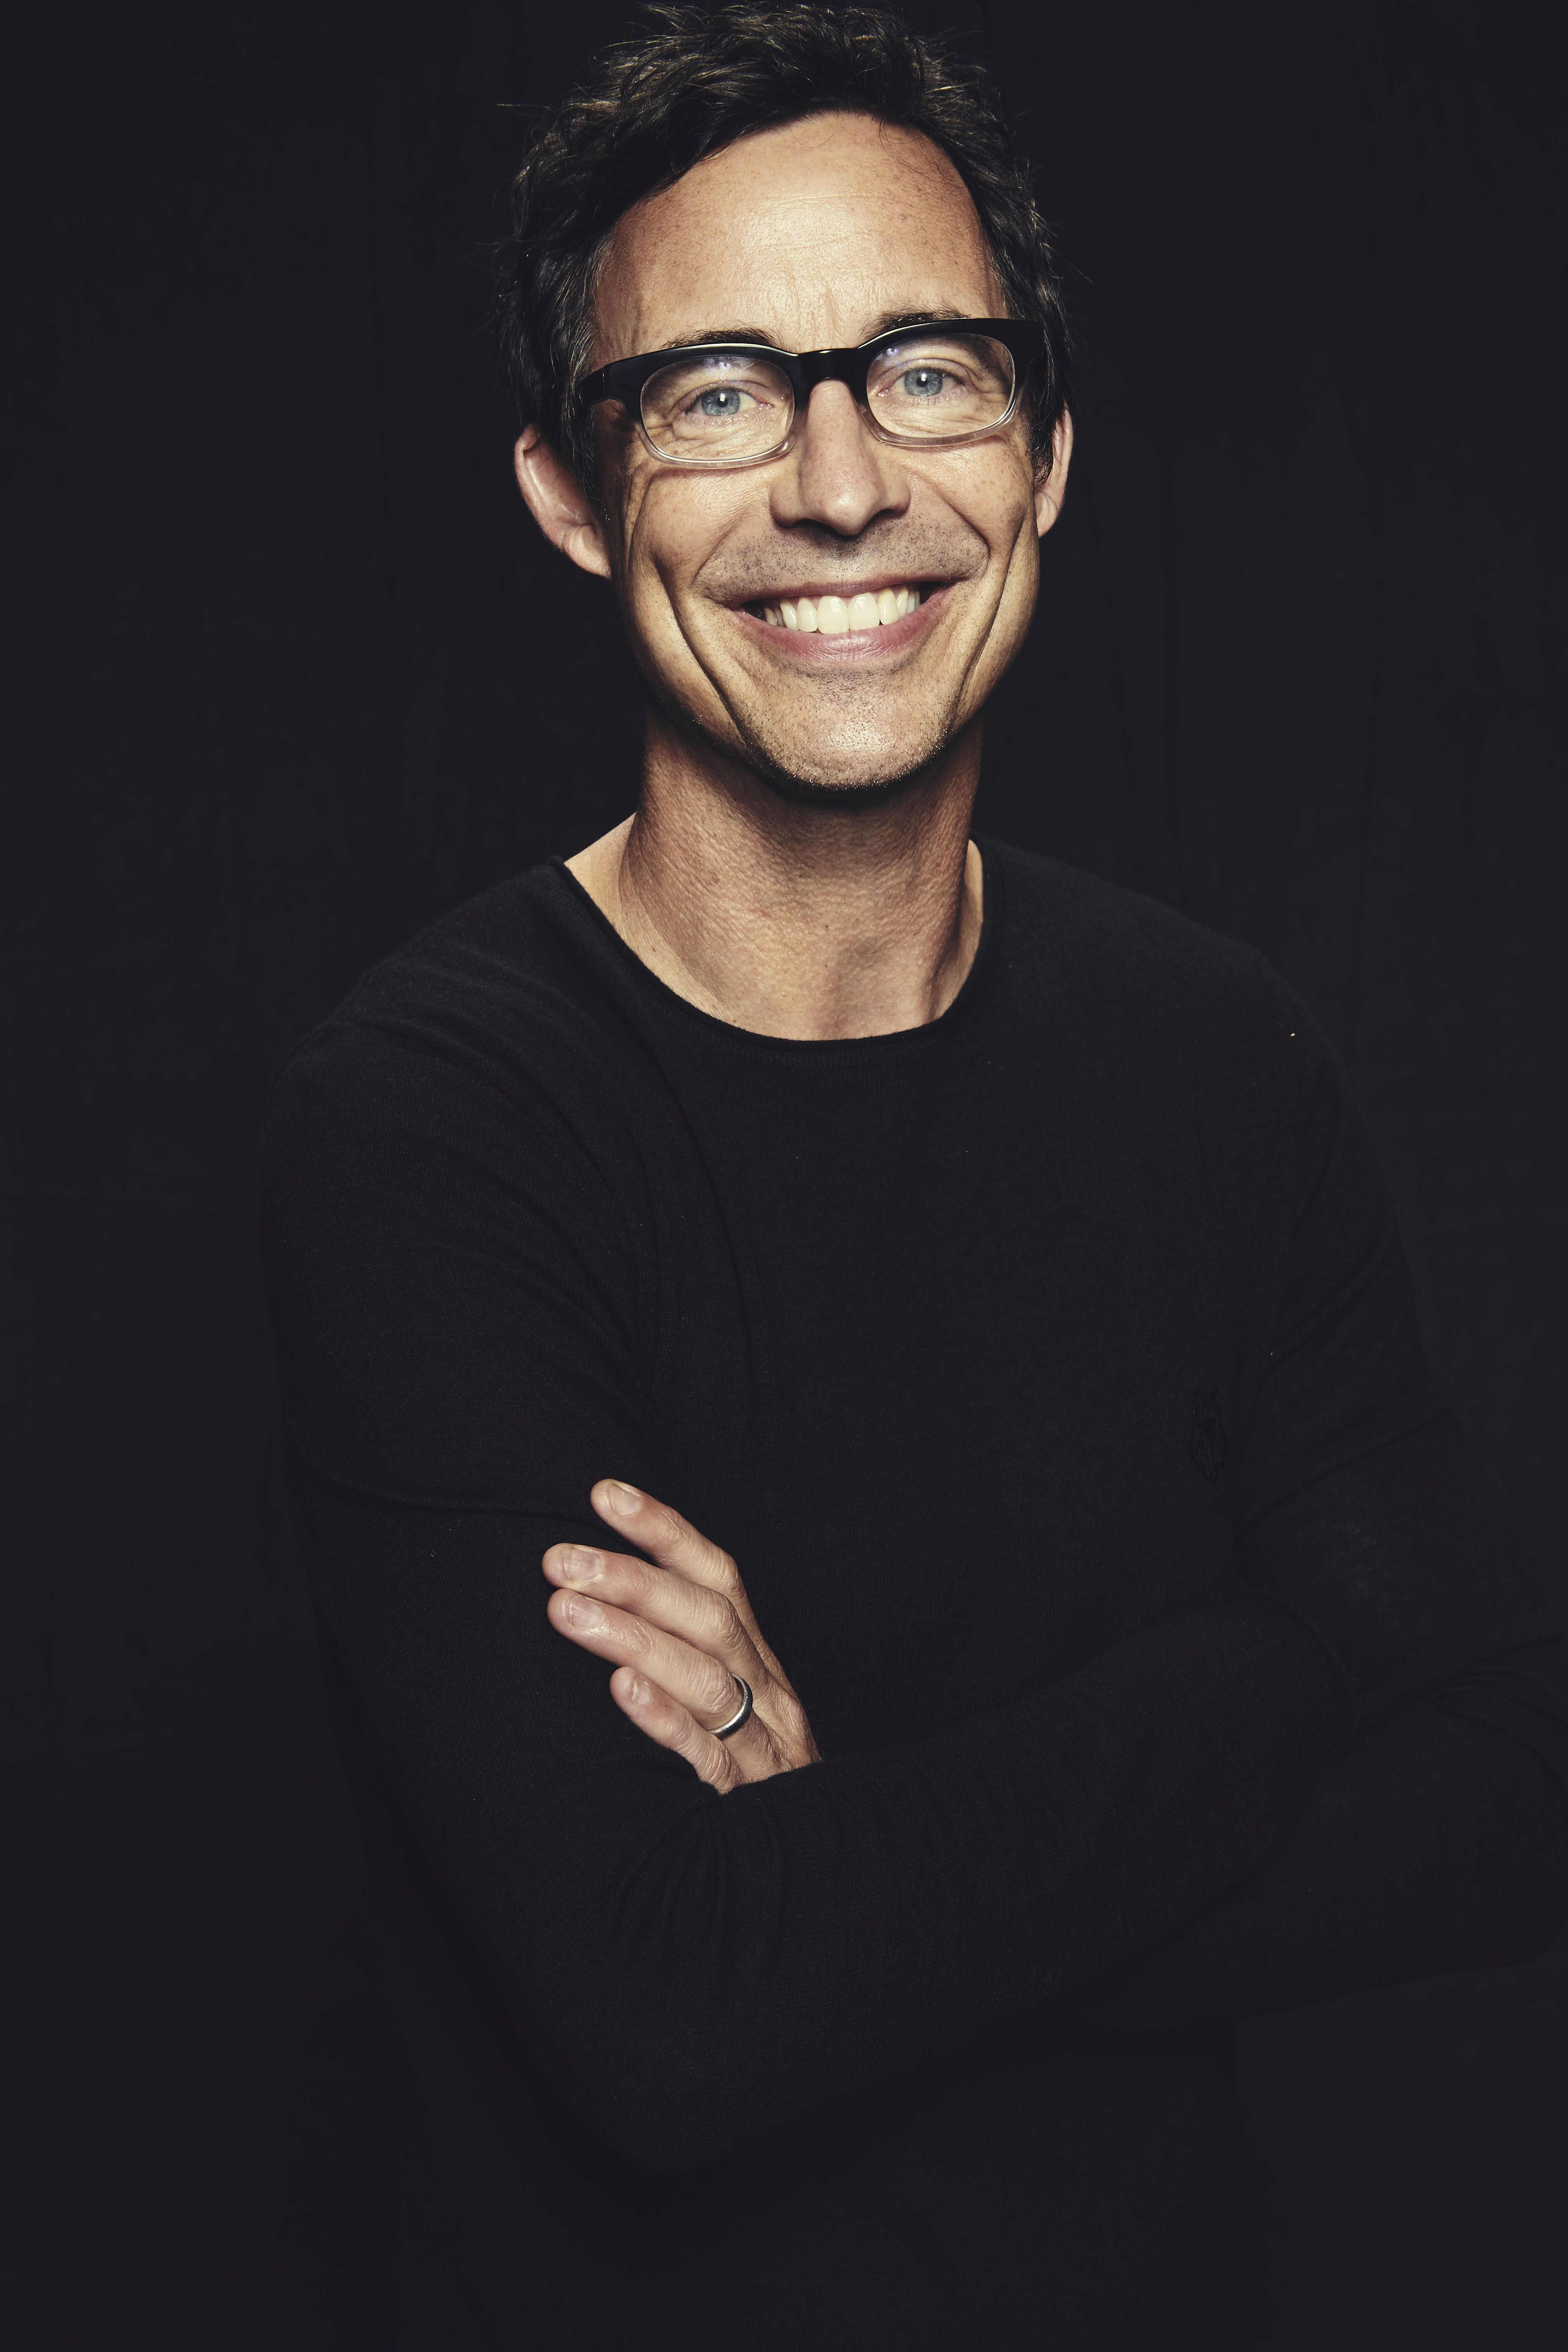 THE FLASH star Tom Cavanagh visited the Warner Bros. Television Photo Studio at WBTV's Comic-Con cocktail media mixer at the Hard Rock Hotel's FLOAT Rooftop Bar on Friday, July 25. #WBSDCC